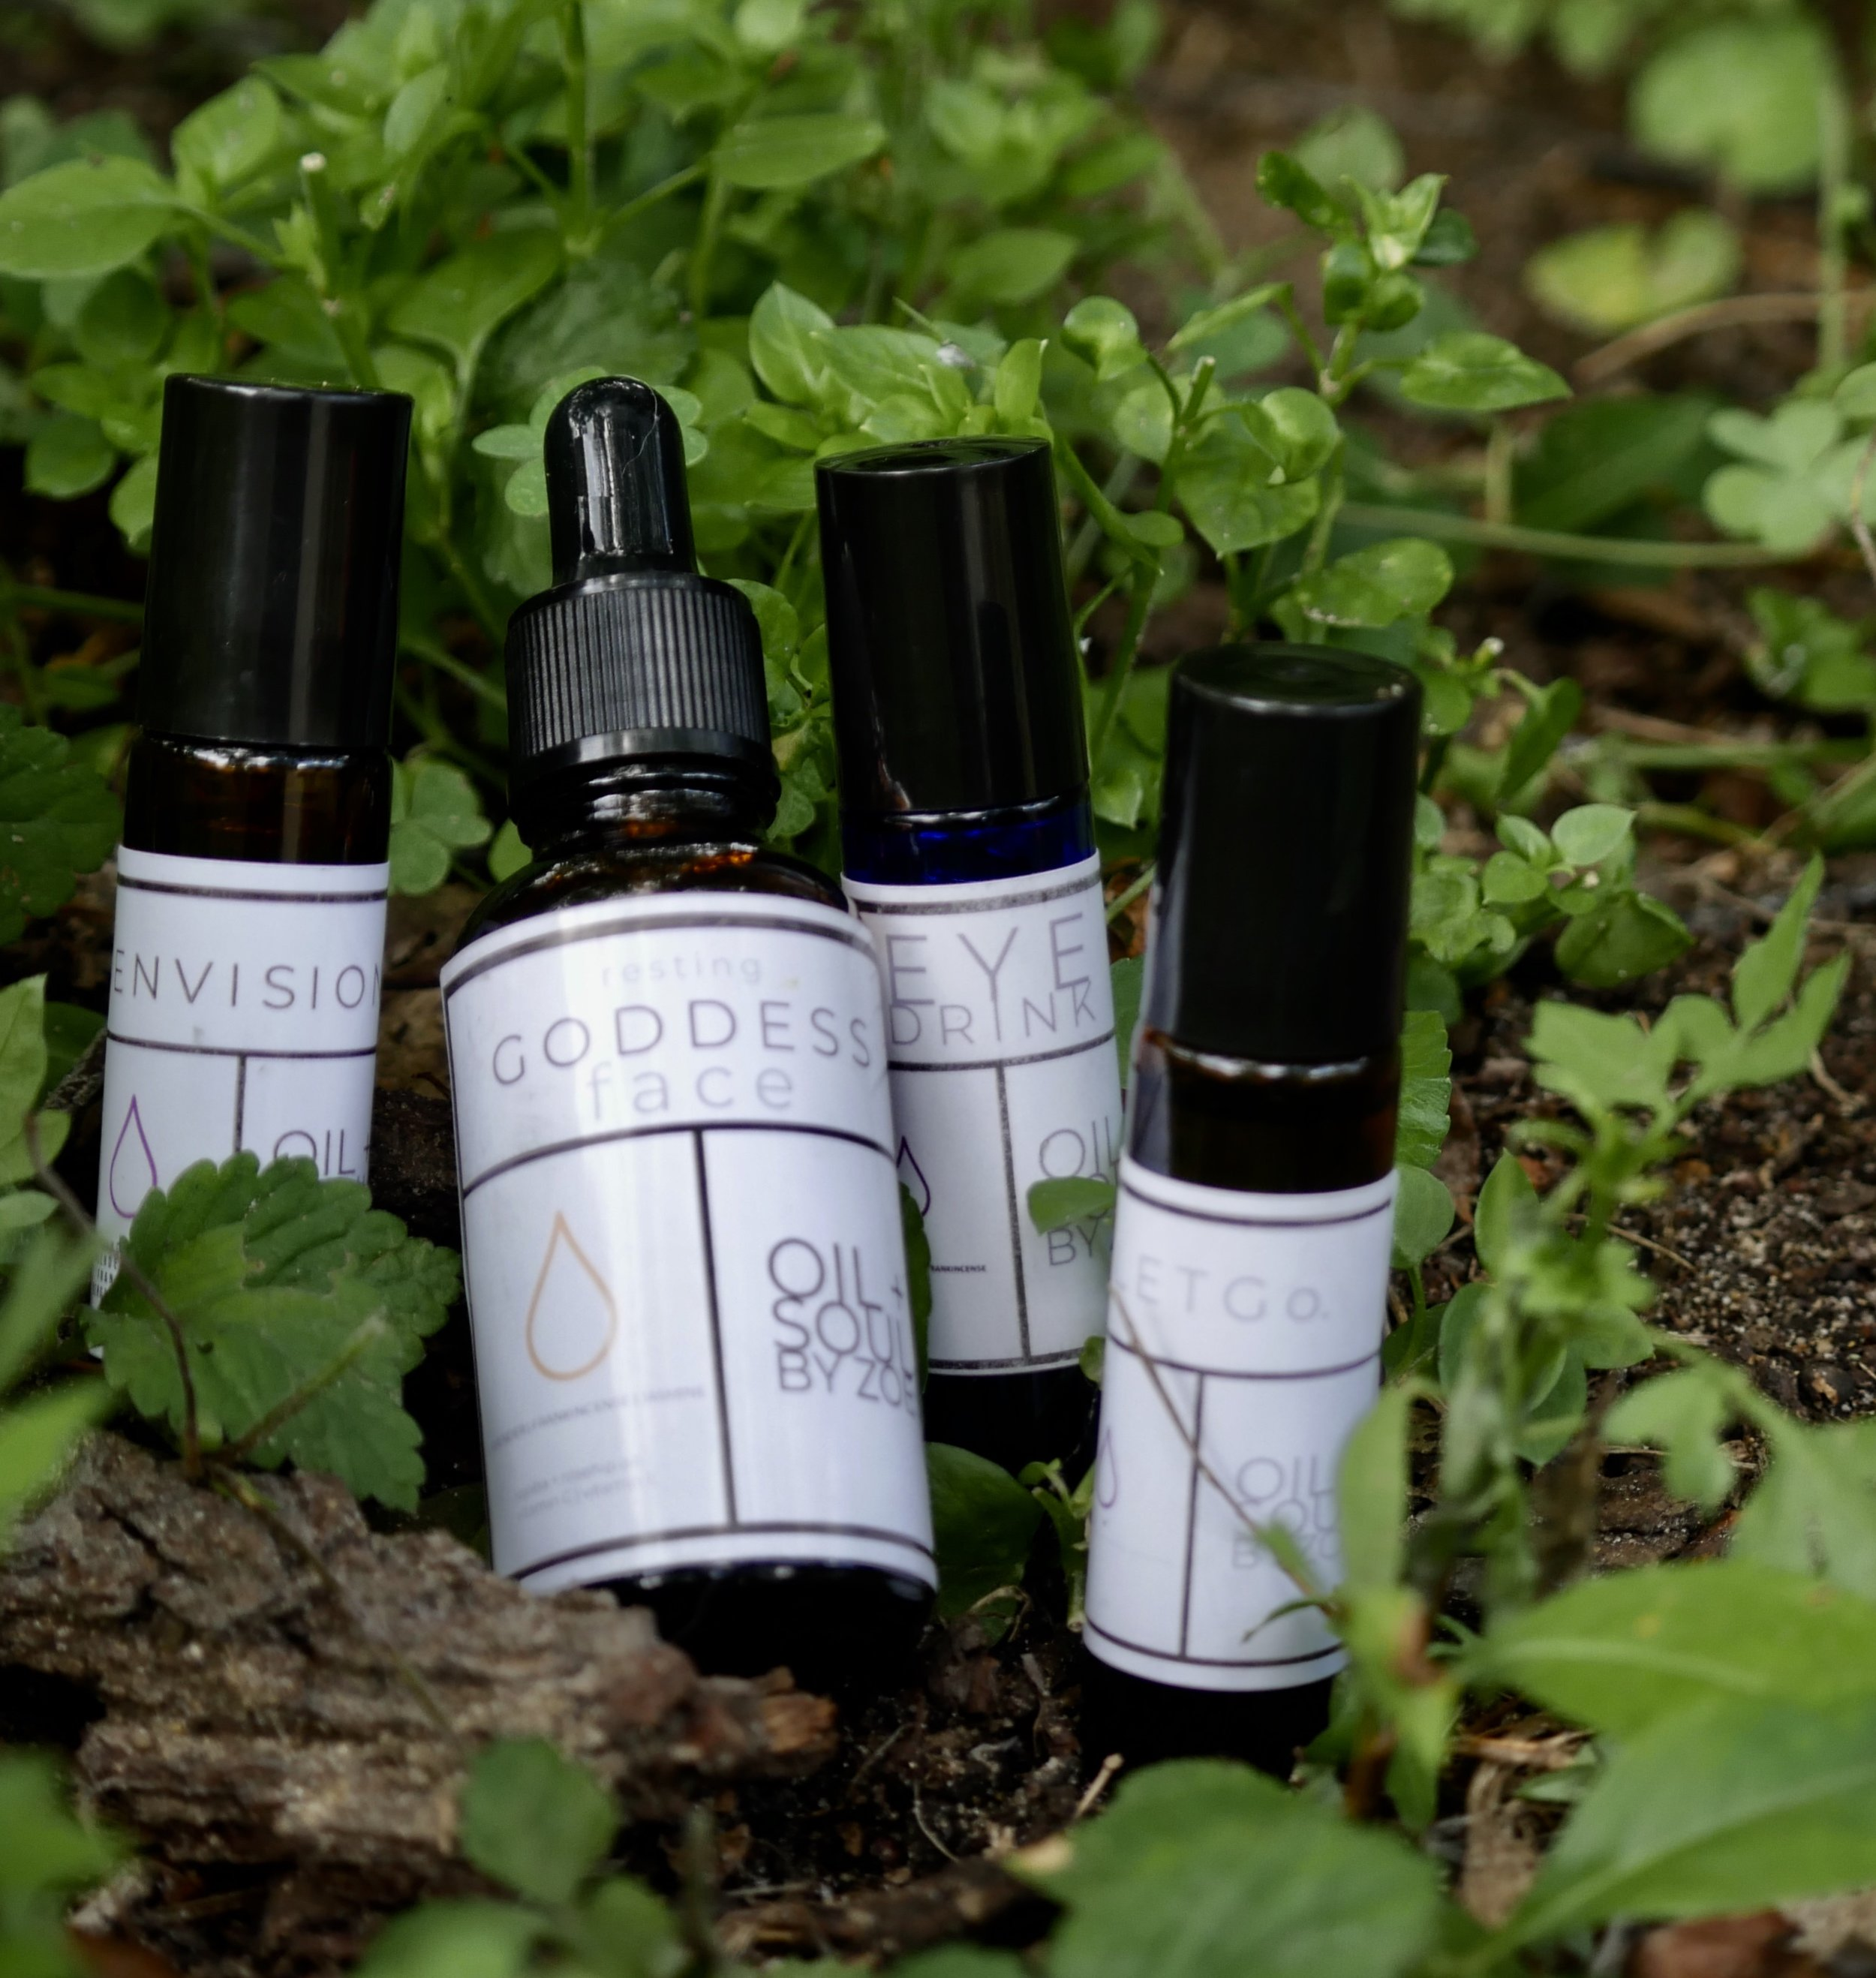 Oil+Soul by ZOE - 100% organic skincare elixirs